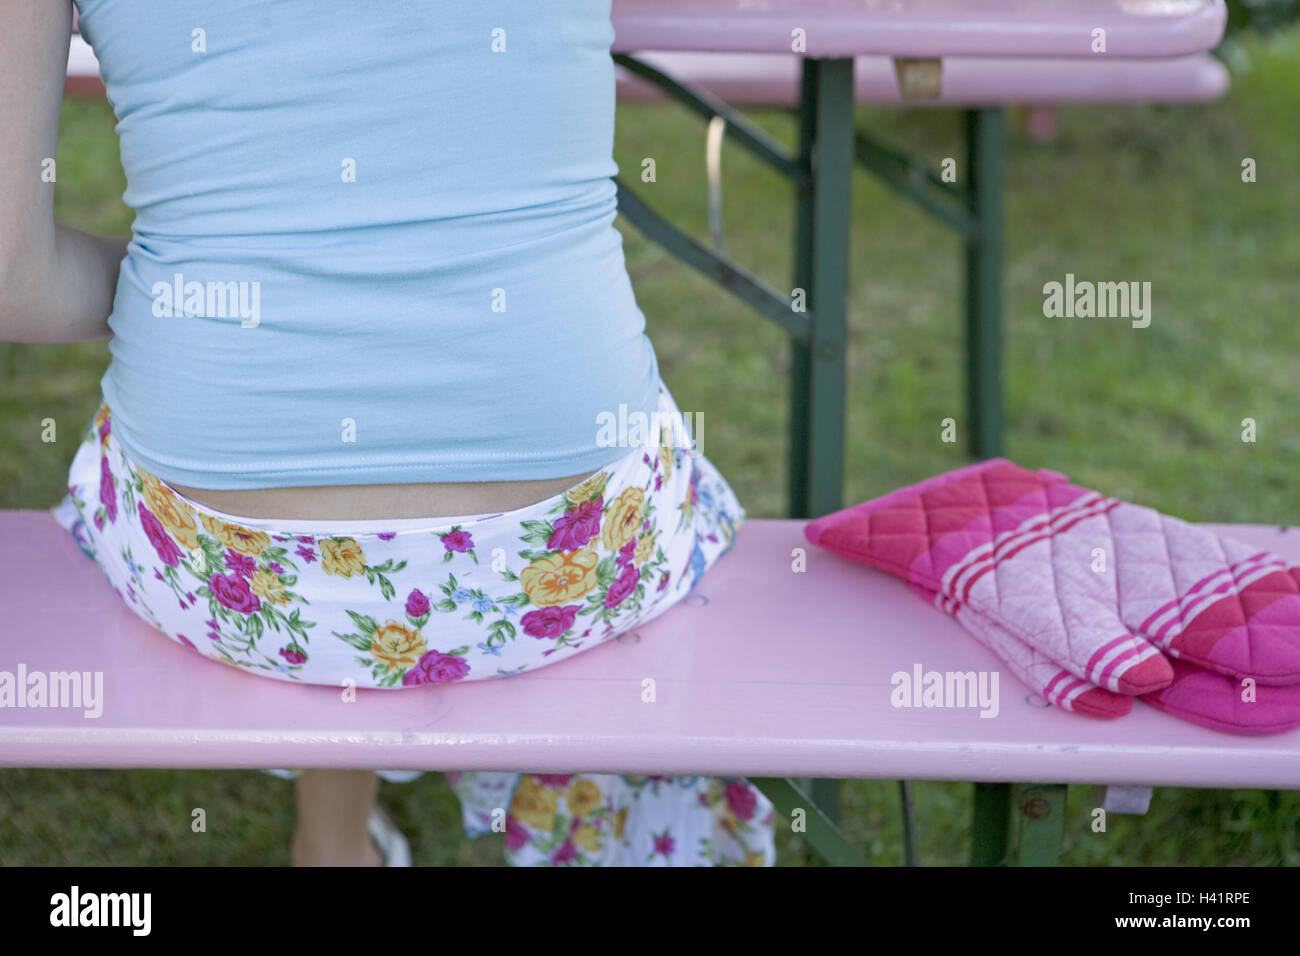 Sits beer bank, woman, back opinion,,  Detail, grill gloves, broached  24 years, 20-30 years, clothing, summery, - Stock Image